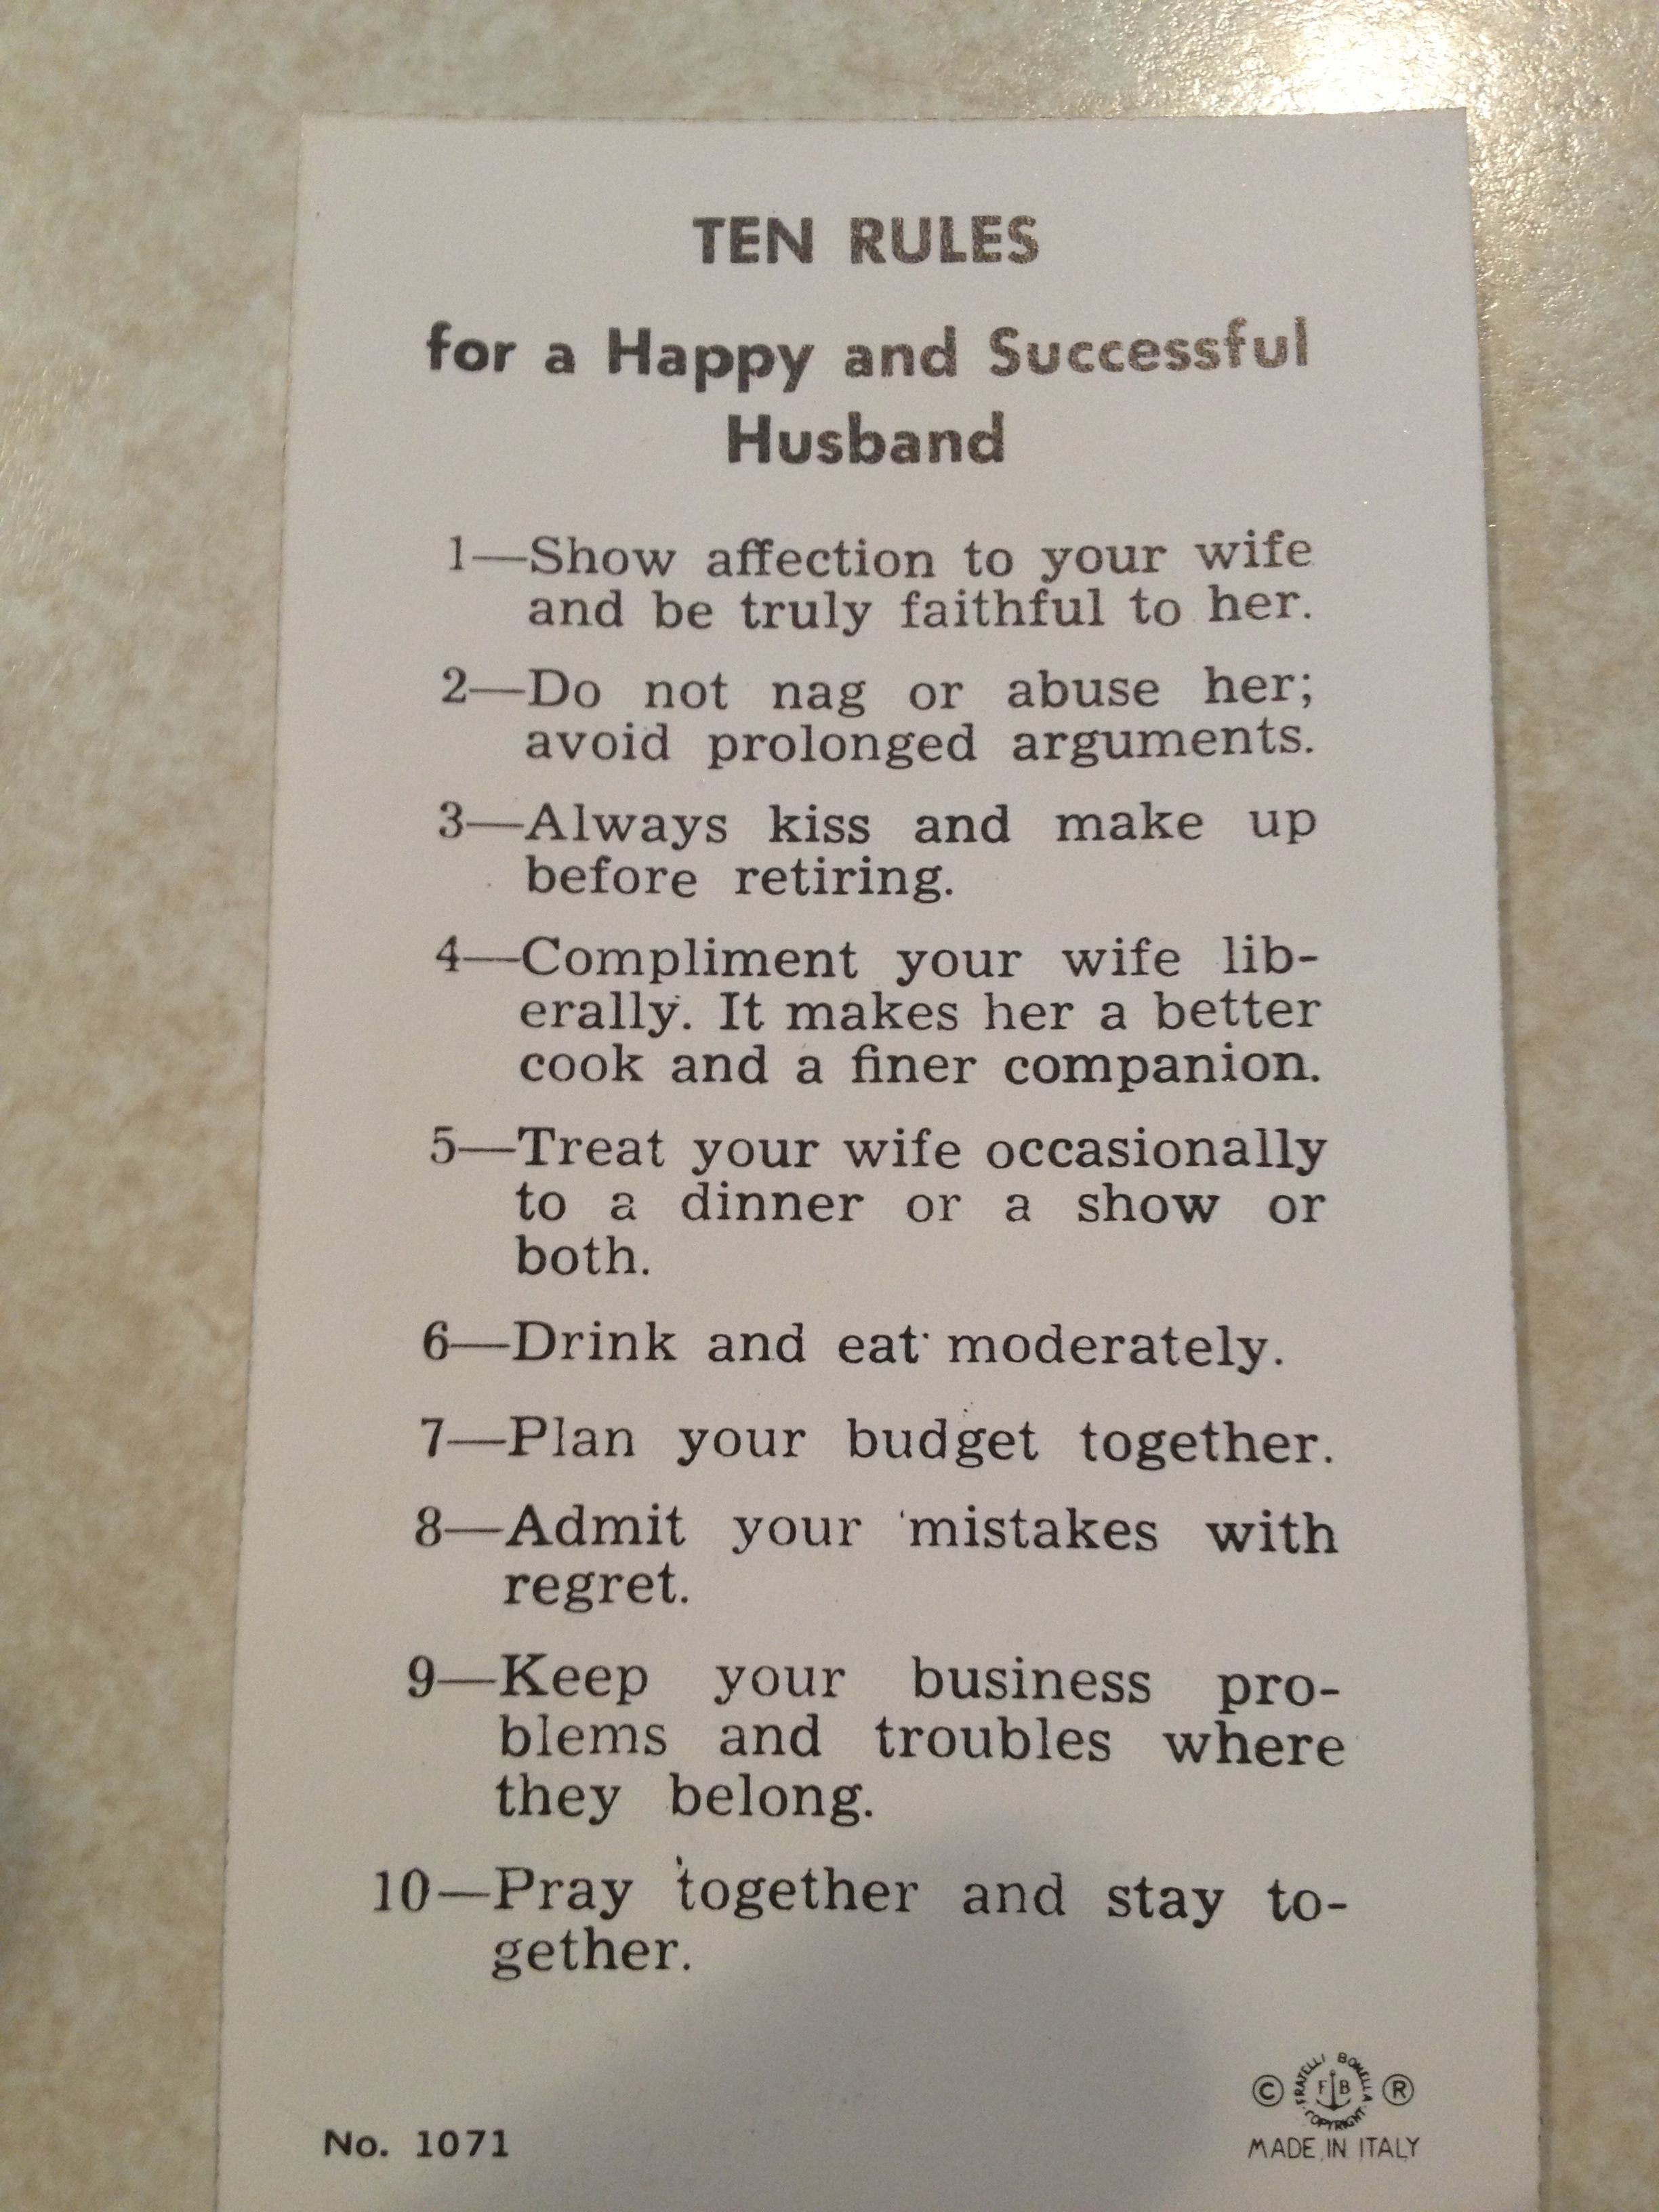 10 Rules For A Happy Husband Lol Are We In 1950 Ur Funny Didn T Know U Pinned It Happy Husband Fun Cooking Happy